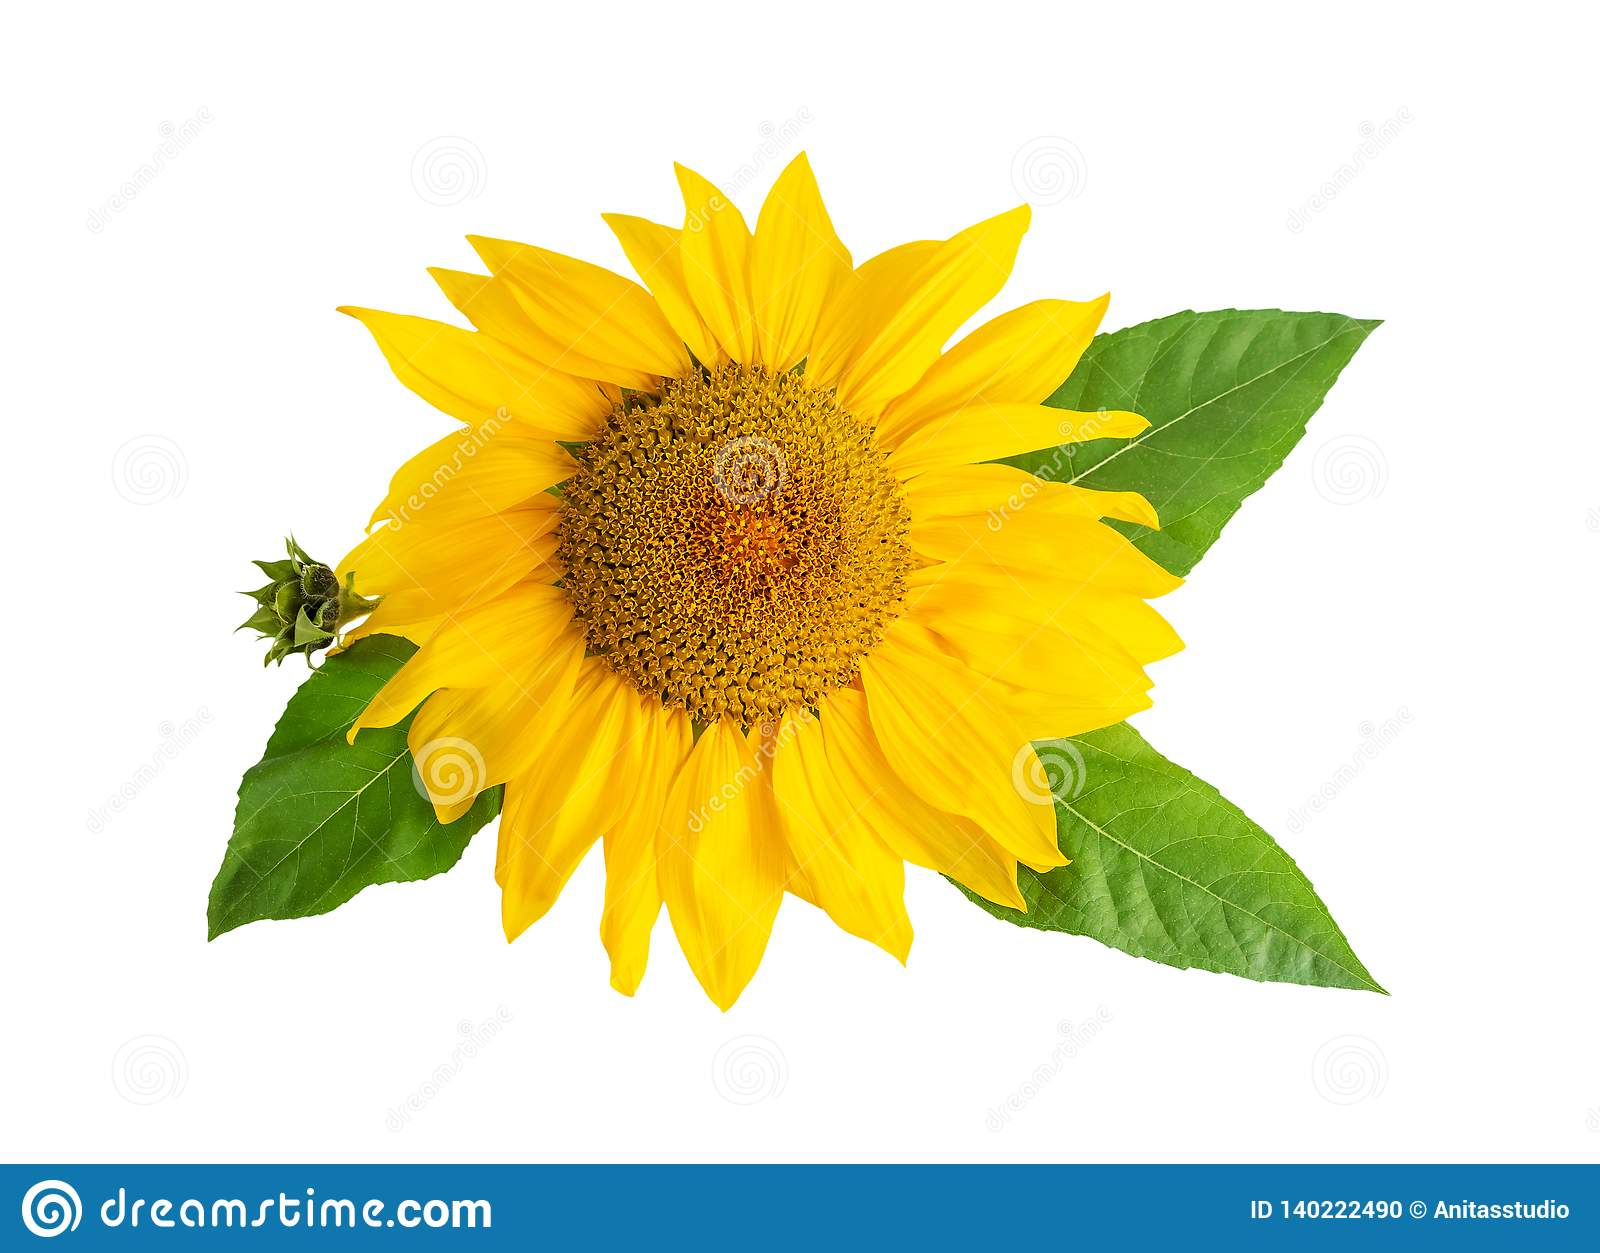 Sunflower yellow flower head with leafs isolated on white